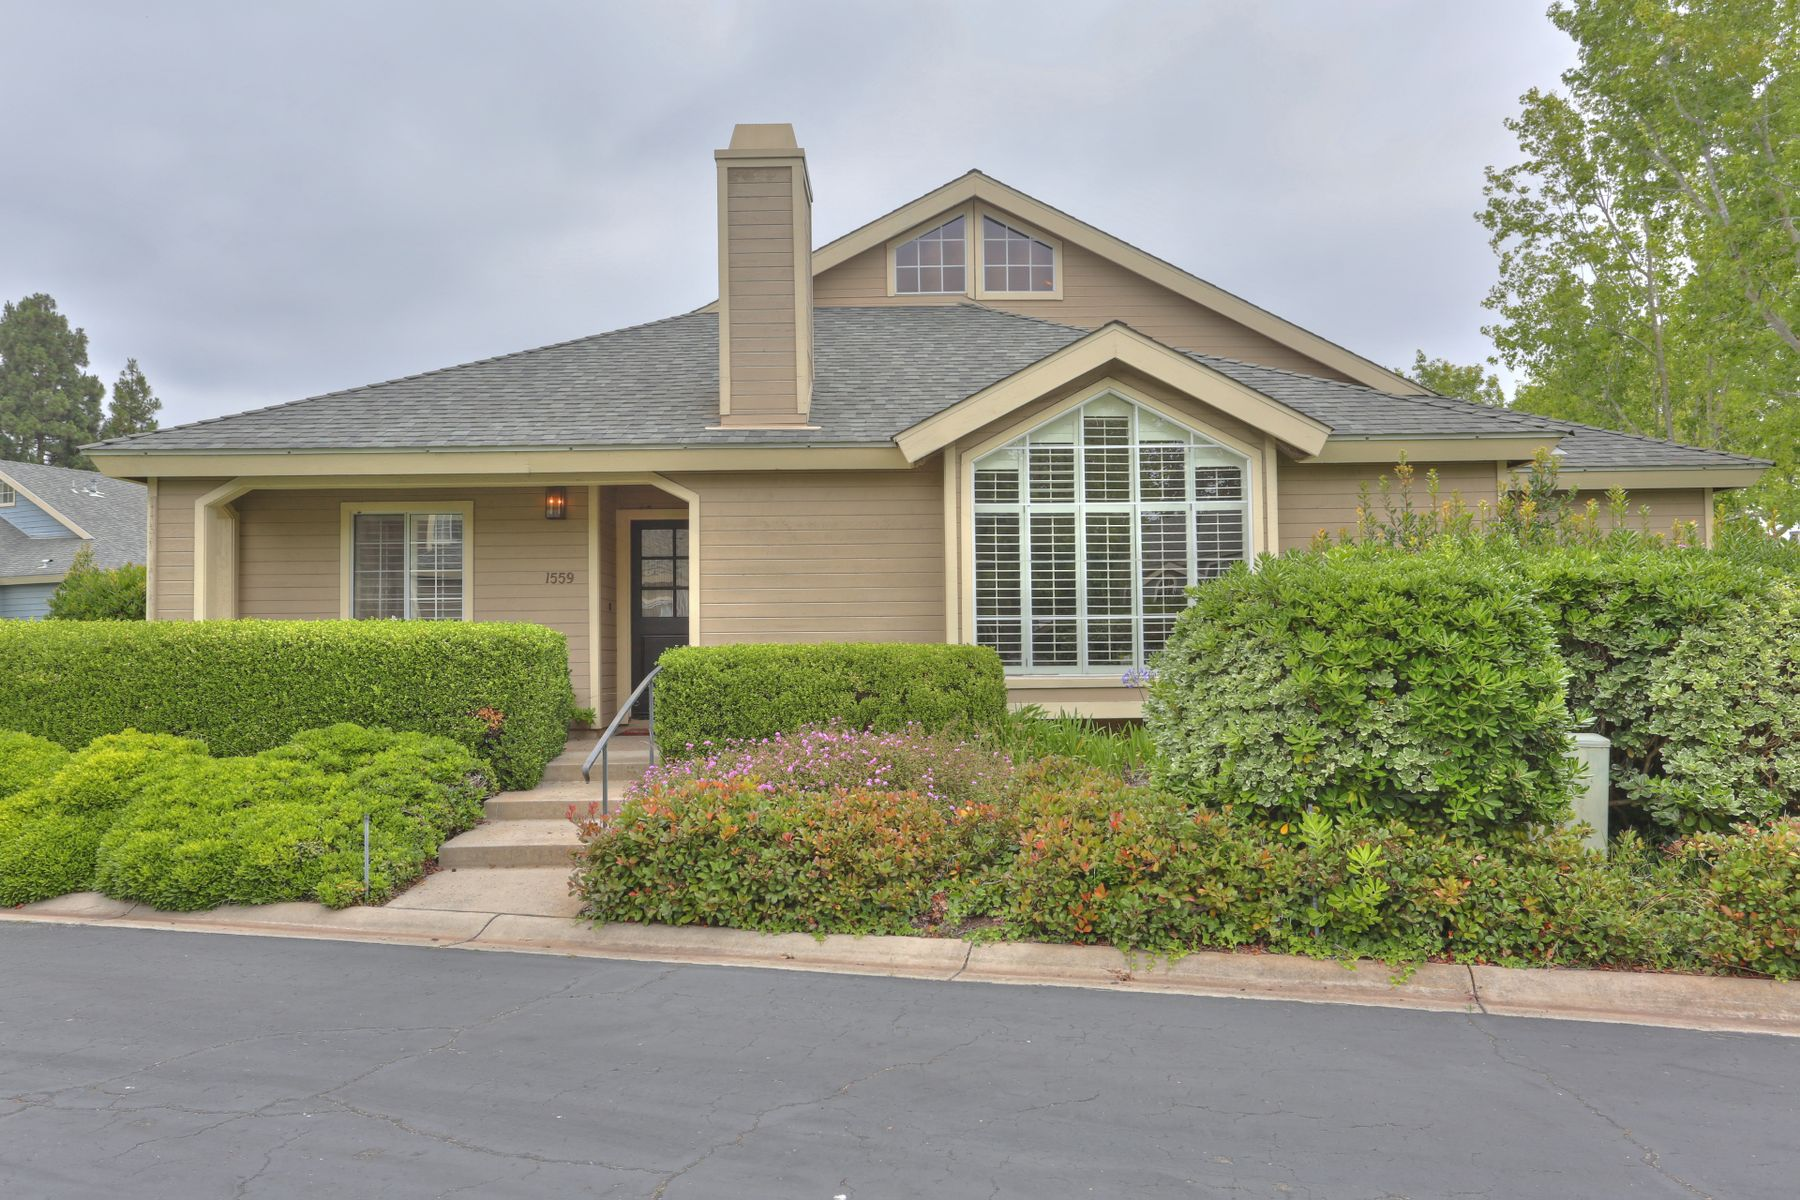 Residenza monofamiliare in vendita in 1559 Meadow Circle, Carpinteria, California ,93013